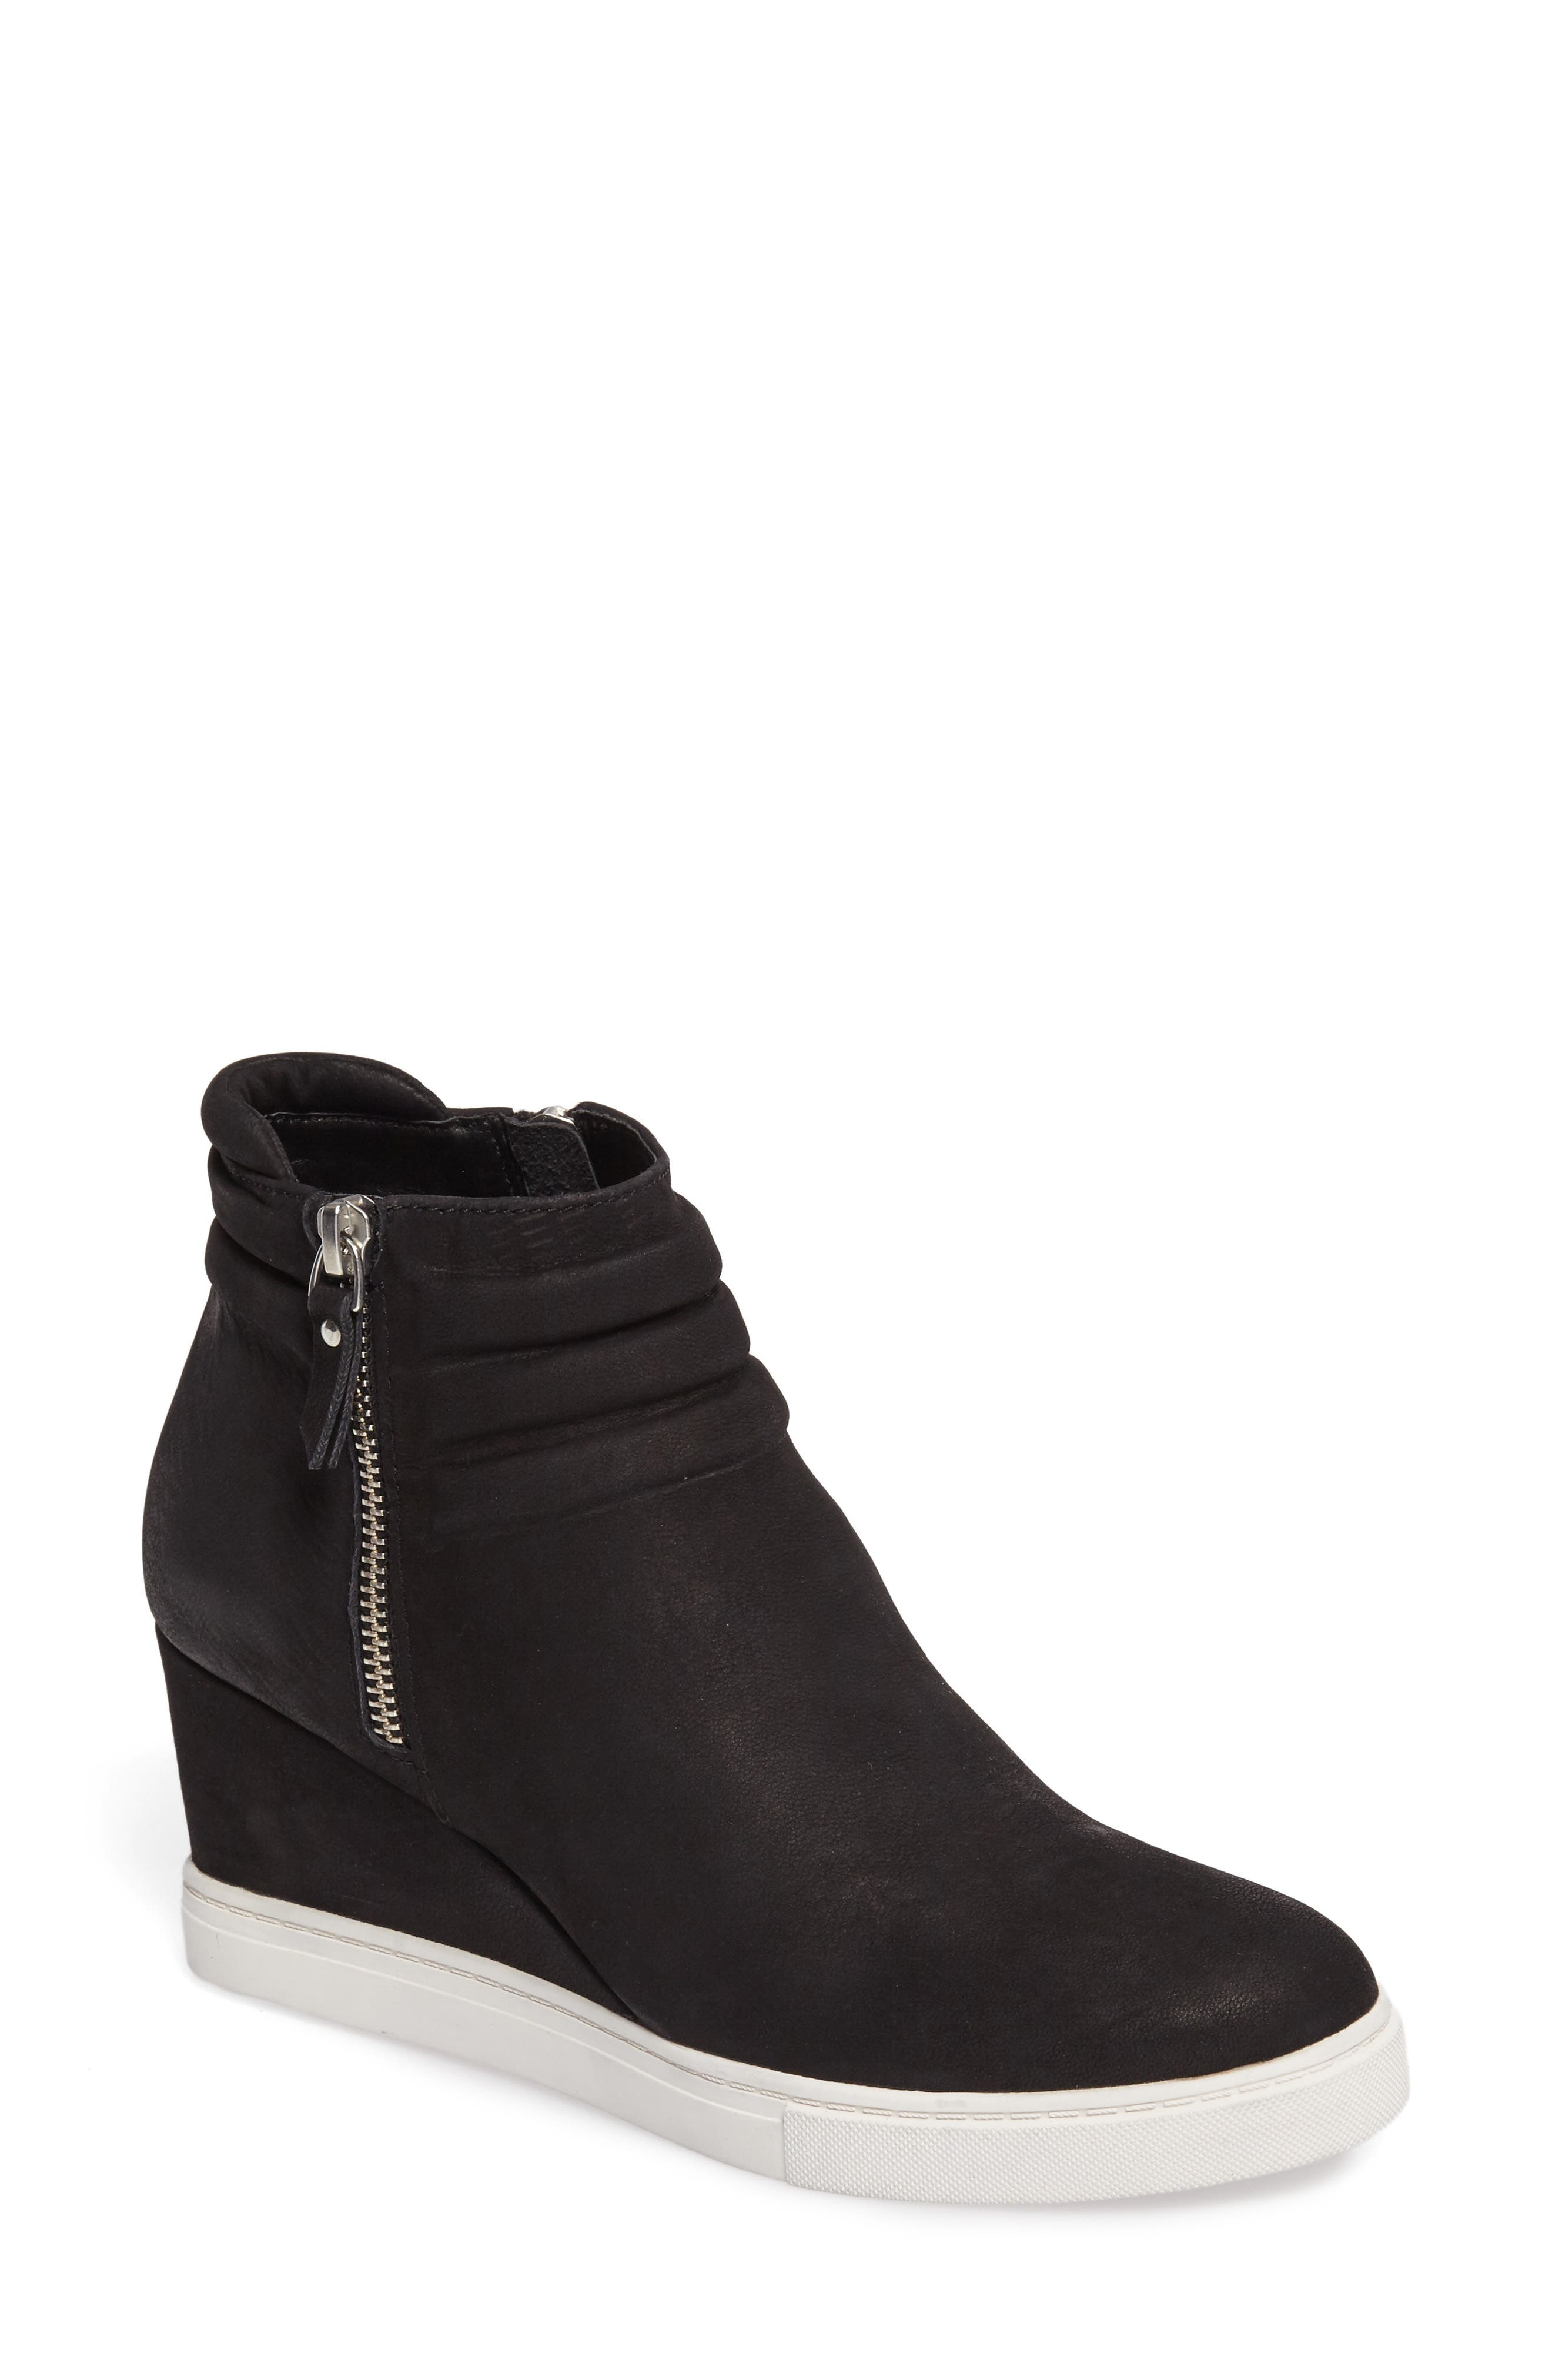 Linea Paolo Frieda Wedge Bootie (Women)